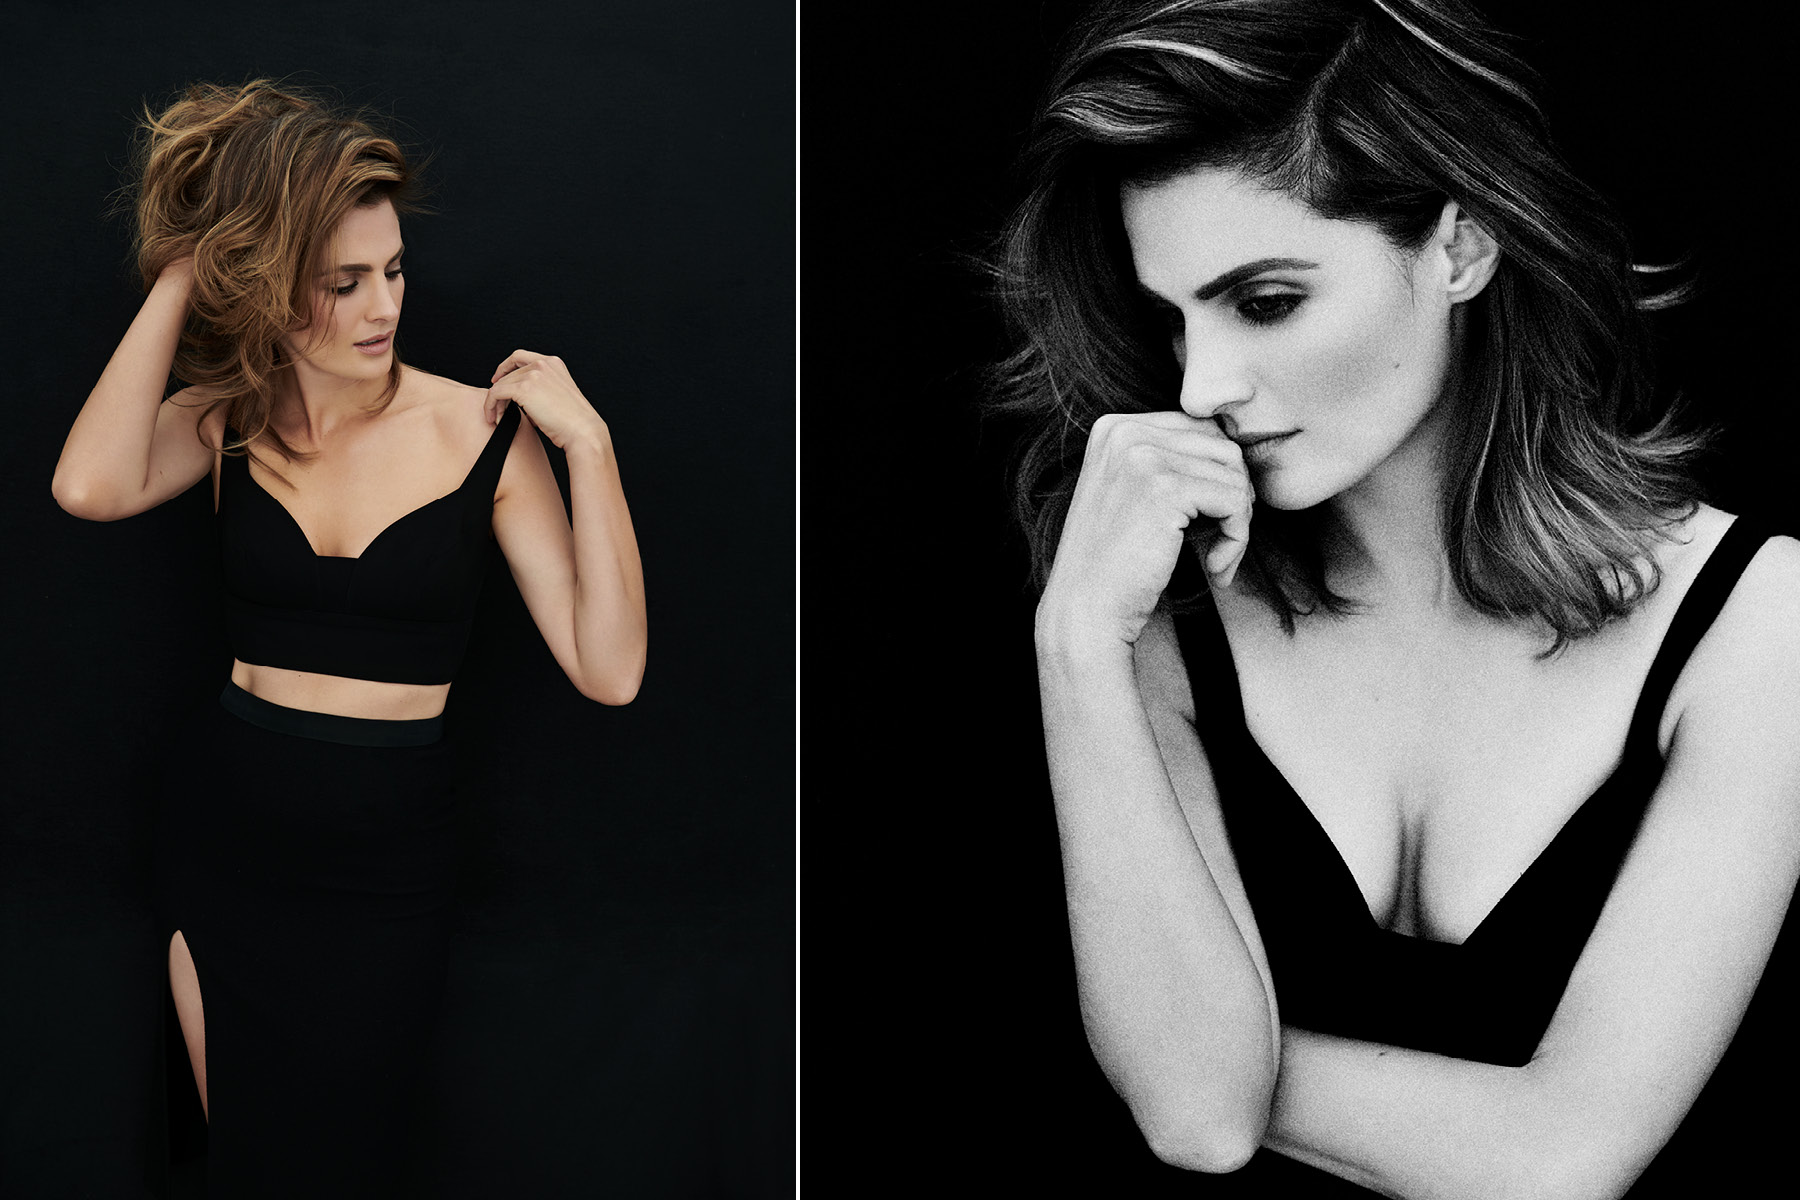 Spirit-&-Flesh-Magazine_STANA-KATIC_by_BRIAN-BOWEN-SMITH_8